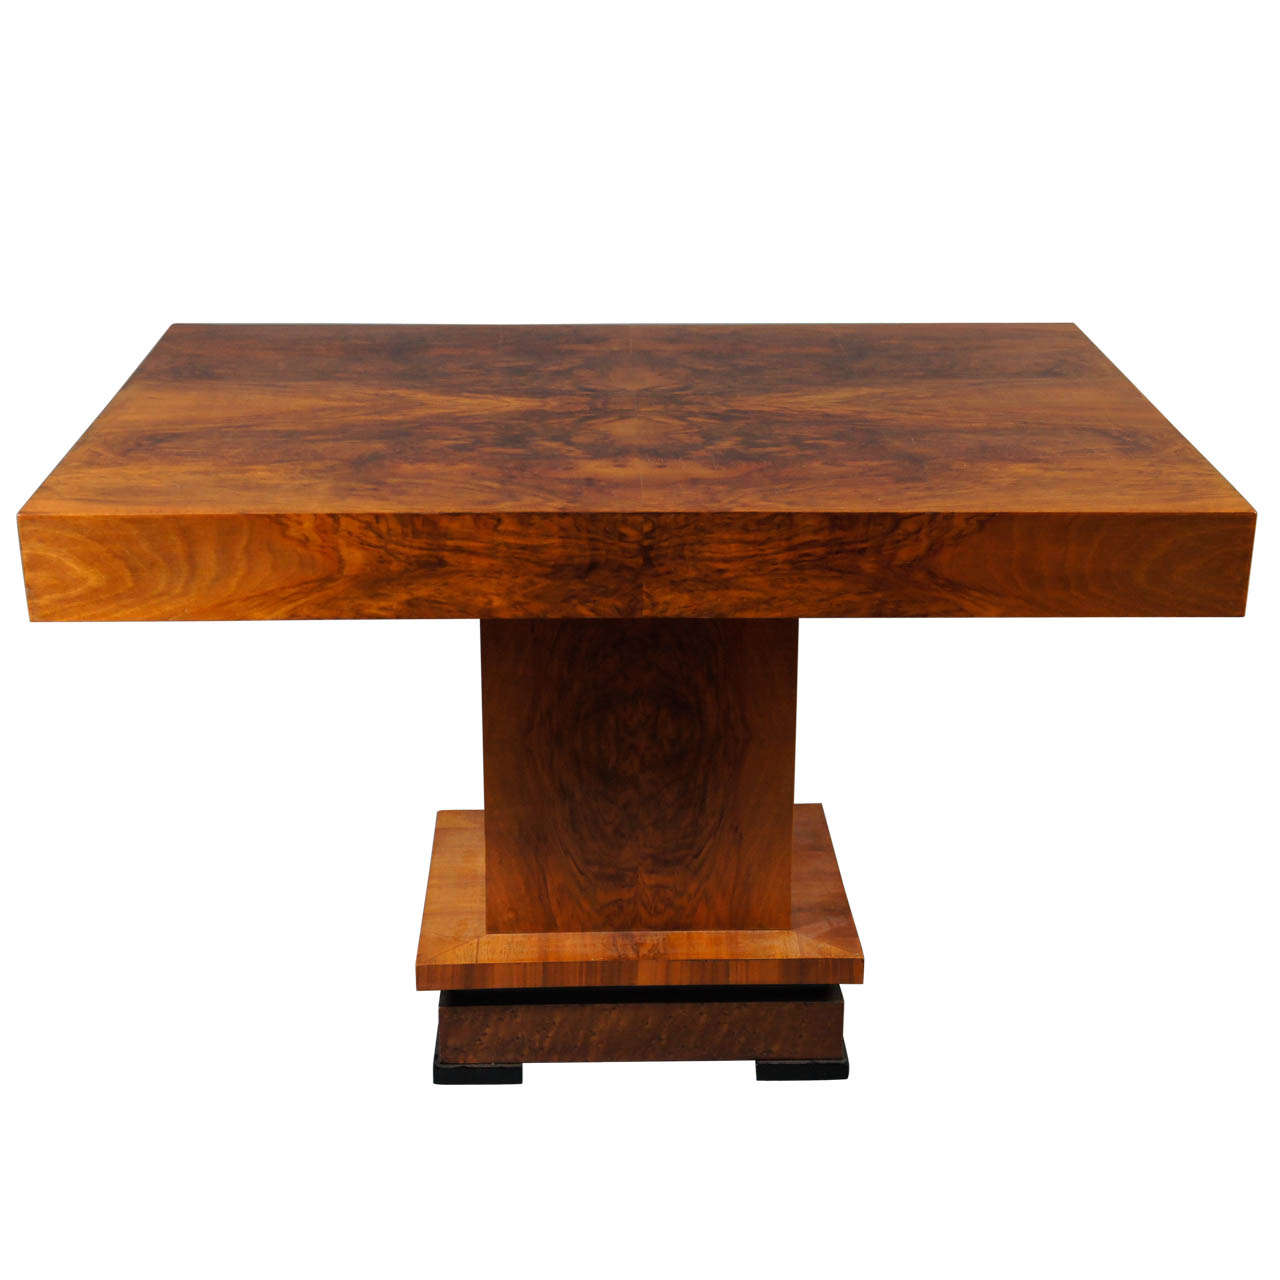 Deco 1930's Wood Table 1